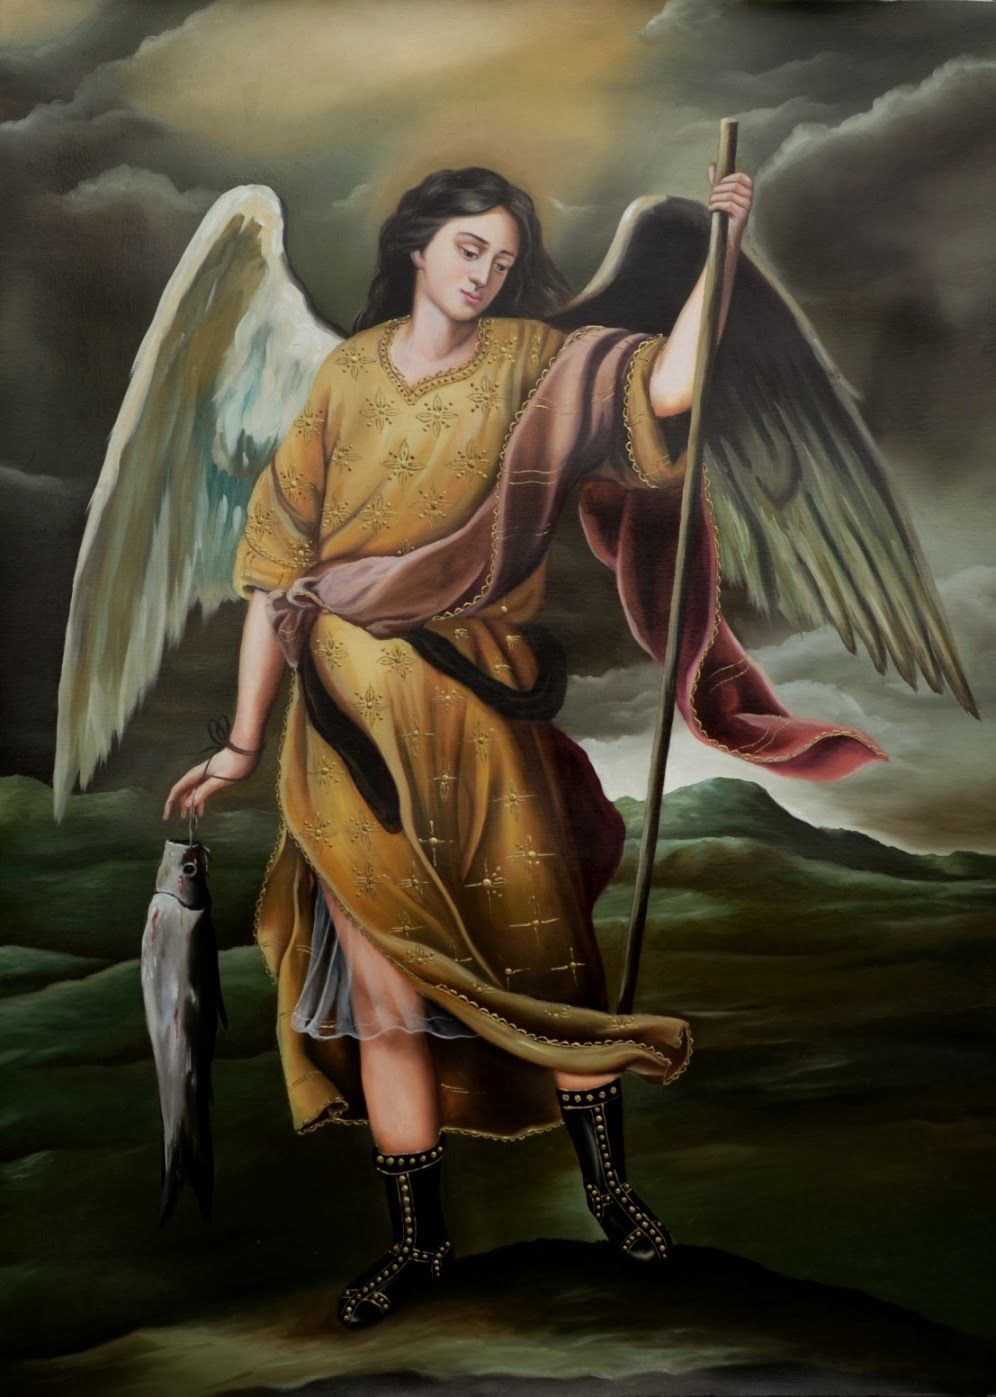 The many facets of the Archangel Raphael in Bible legends